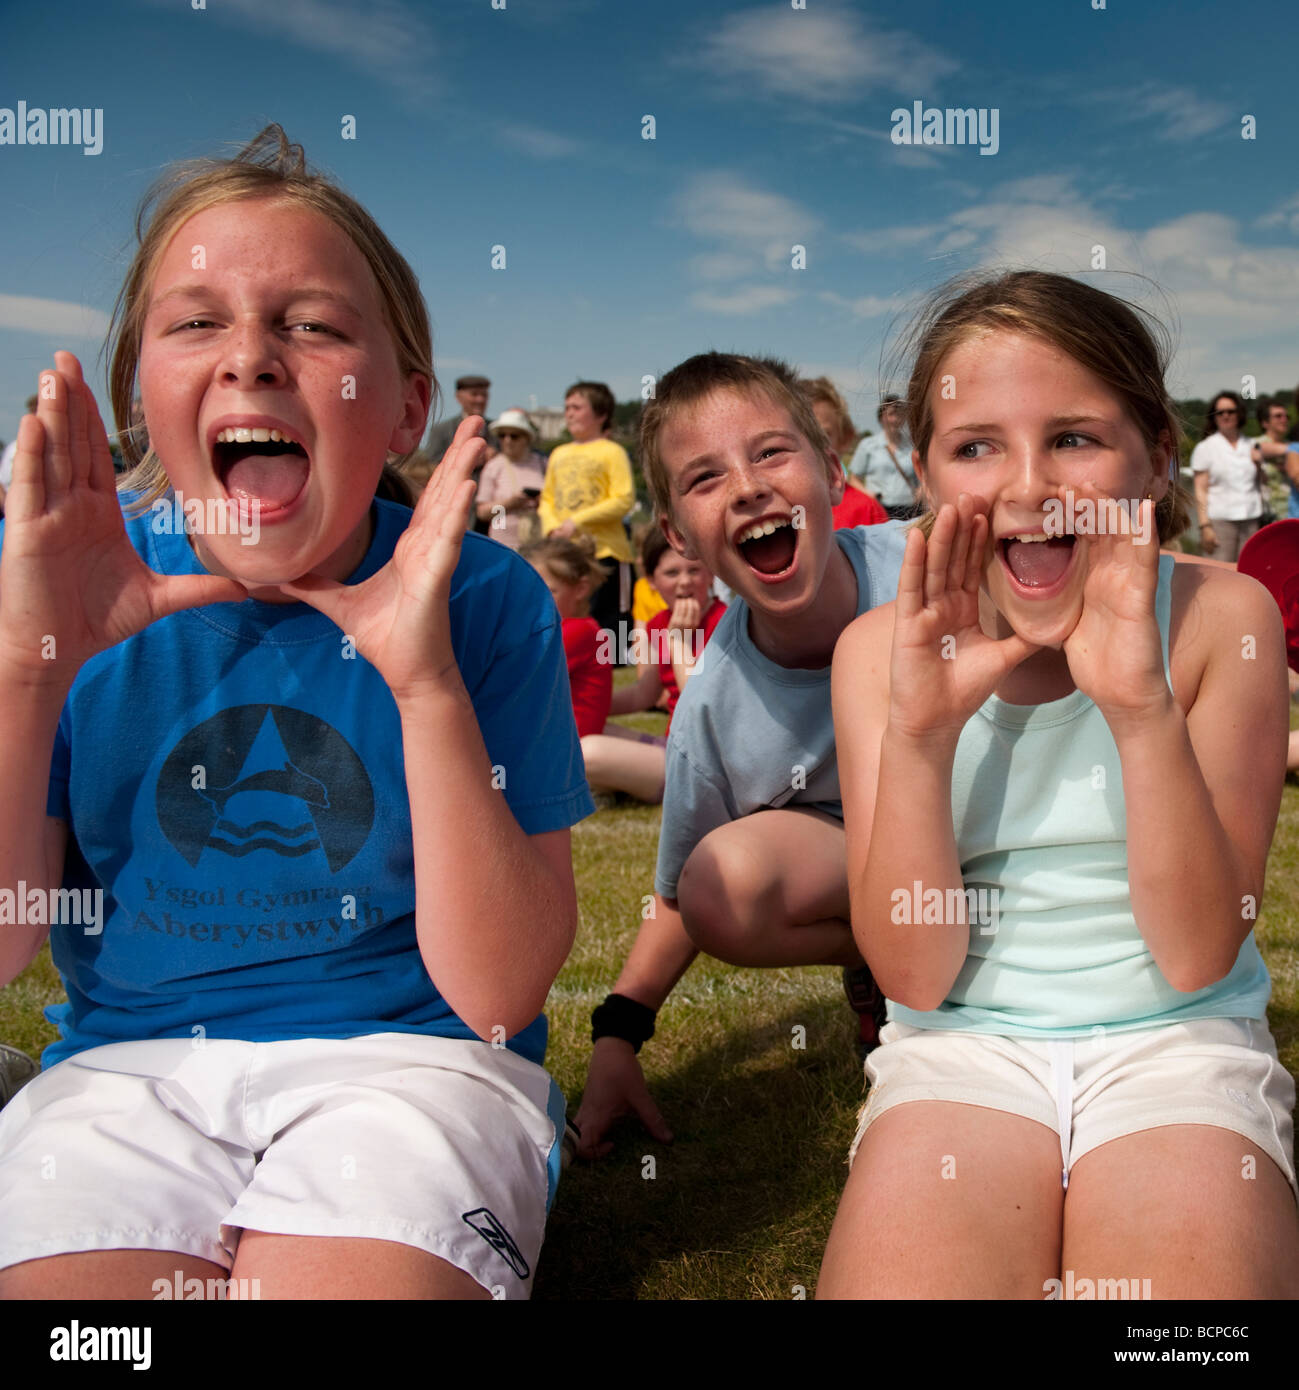 Children shouting in support of their house  team at a primary School sports day UK - Stock Image